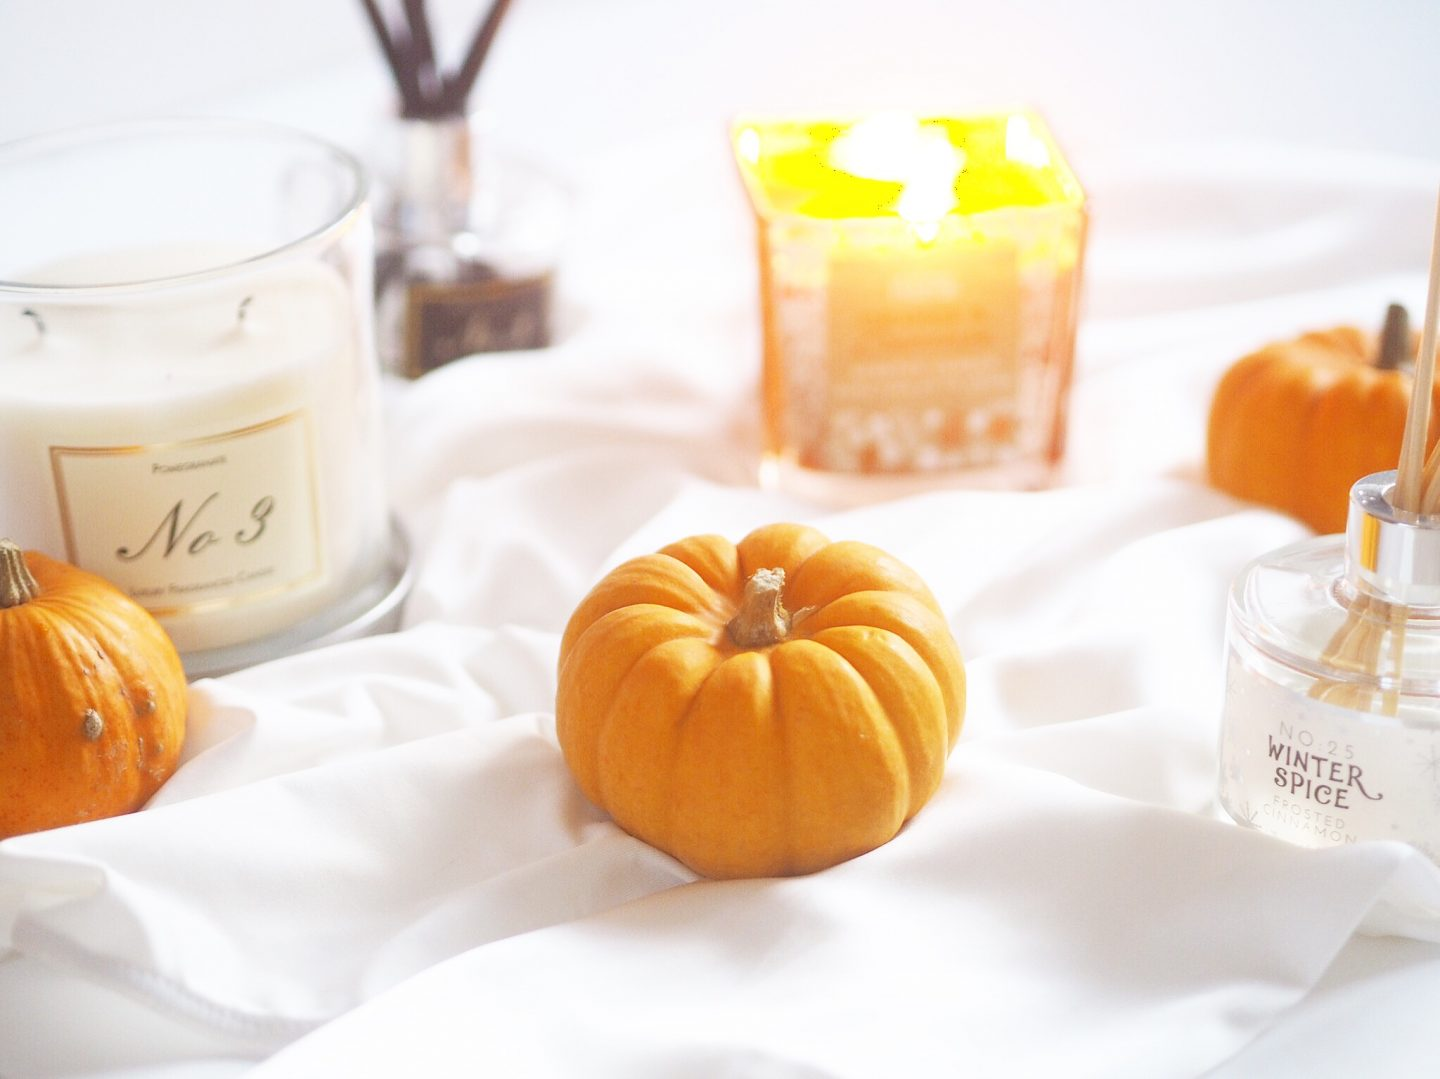 ASDA orange and cinnamon candle